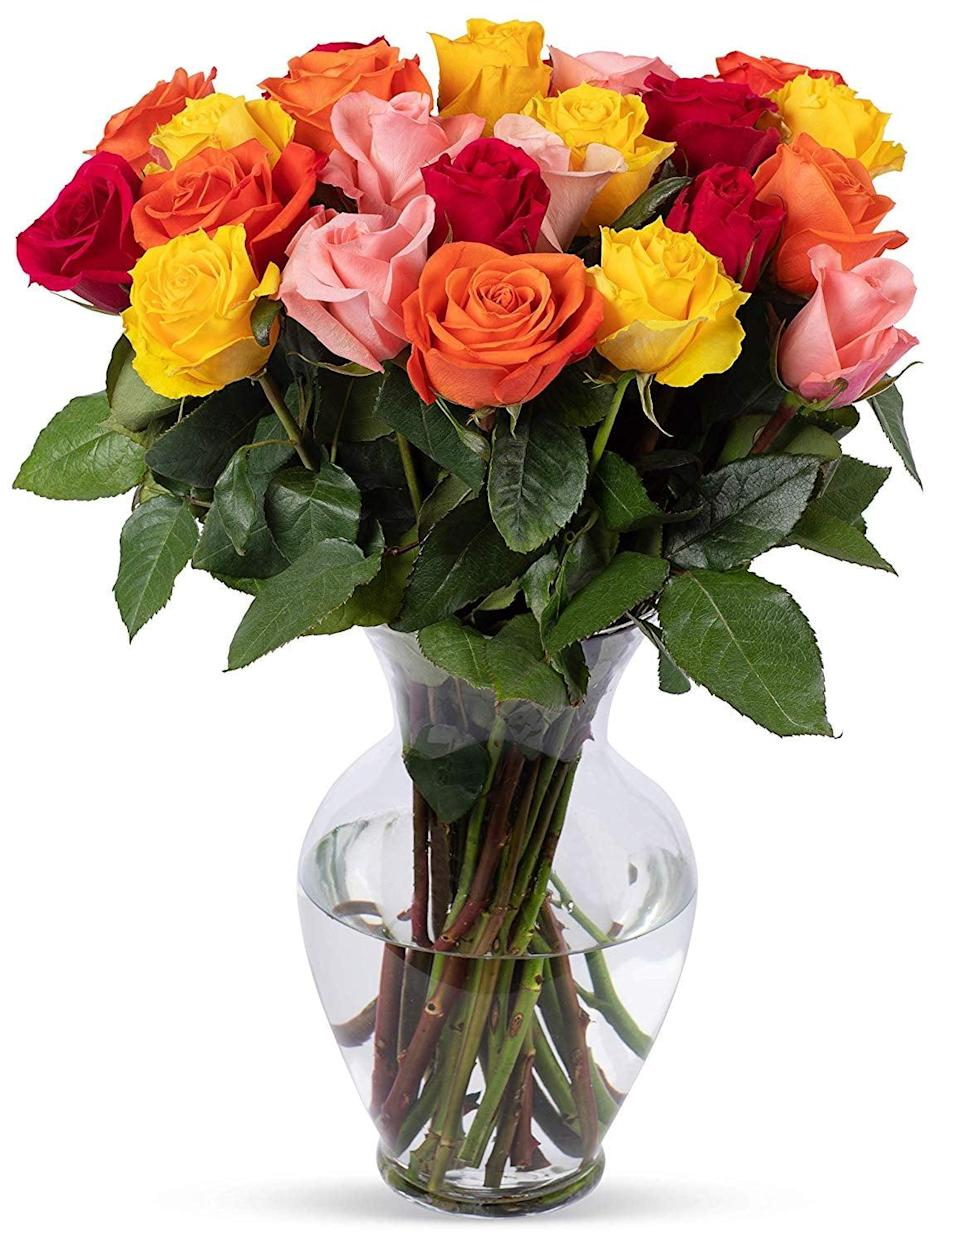 """<p>Warm up your loved one's home with these <a href=""""https://www.popsugar.com/buy/Benchmark-Bouquets-Rainbow-Roses-444294?p_name=Benchmark%20Bouquets%20Rainbow%20Roses&retailer=amazon.com&pid=444294&price=53&evar1=casa%3Aus&evar9=46127505&evar98=https%3A%2F%2Fwww.popsugar.com%2Fhome%2Fphoto-gallery%2F46127505%2Fimage%2F46128472%2FBenchmark-Bouquets-Rainbow-Roses&list1=shopping%2Cgift%20guide%2Cflowers%2Chouse%20plants%2Cplants%2Cmothers%20day%2Cgifts%20for%20women&prop13=api&pdata=1"""" class=""""link rapid-noclick-resp"""" rel=""""nofollow noopener"""" target=""""_blank"""" data-ylk=""""slk:Benchmark Bouquets Rainbow Roses"""">Benchmark Bouquets Rainbow Roses</a> ($53).</p>"""